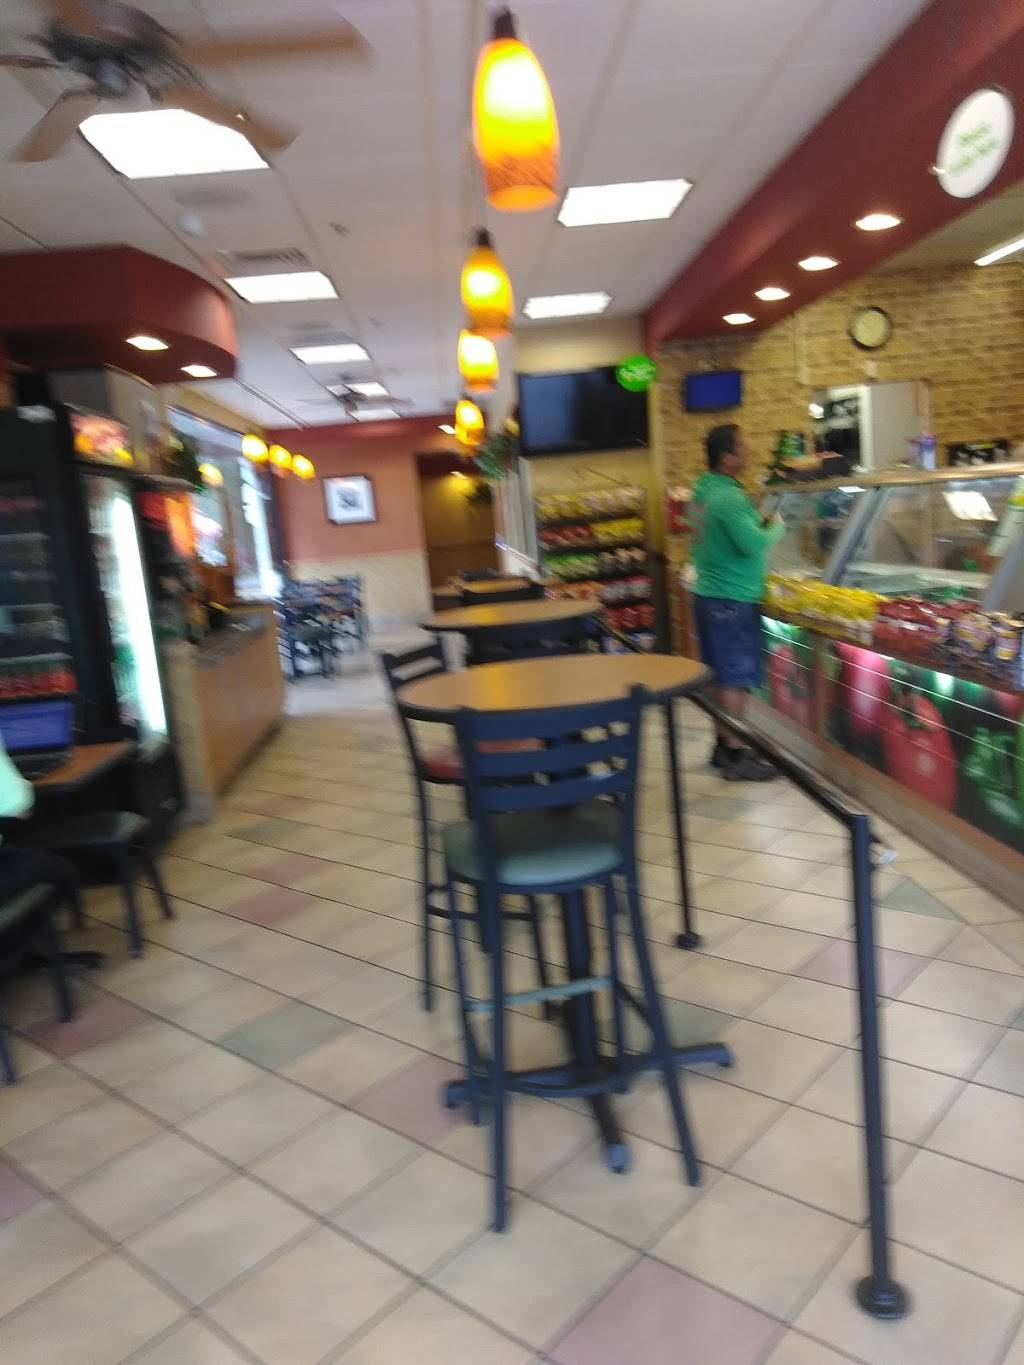 Subway Restaurants   restaurant   2451 McMullen Booth Rd #1, Clearwater, FL 33759, USA   7277263775 OR +1 727-726-3775